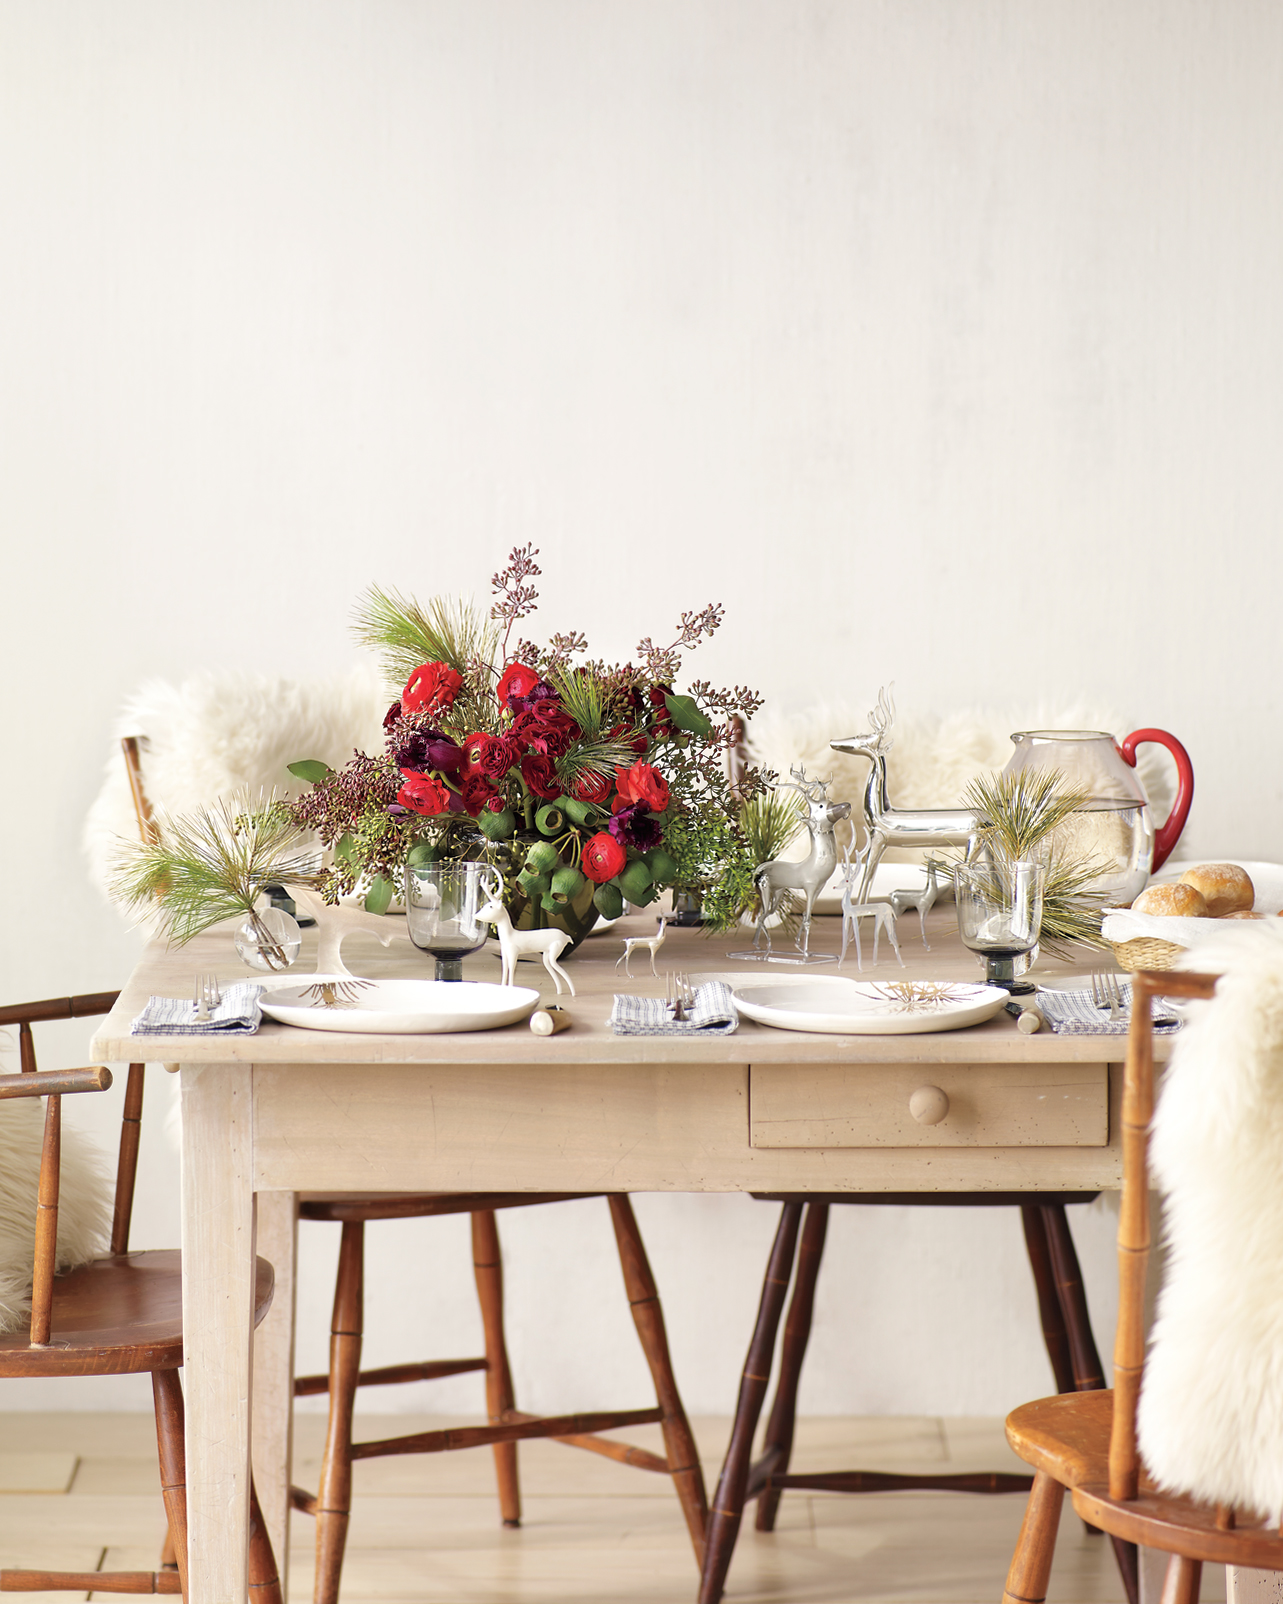 seasonal-flowers-deer-table-mld108425.jpg